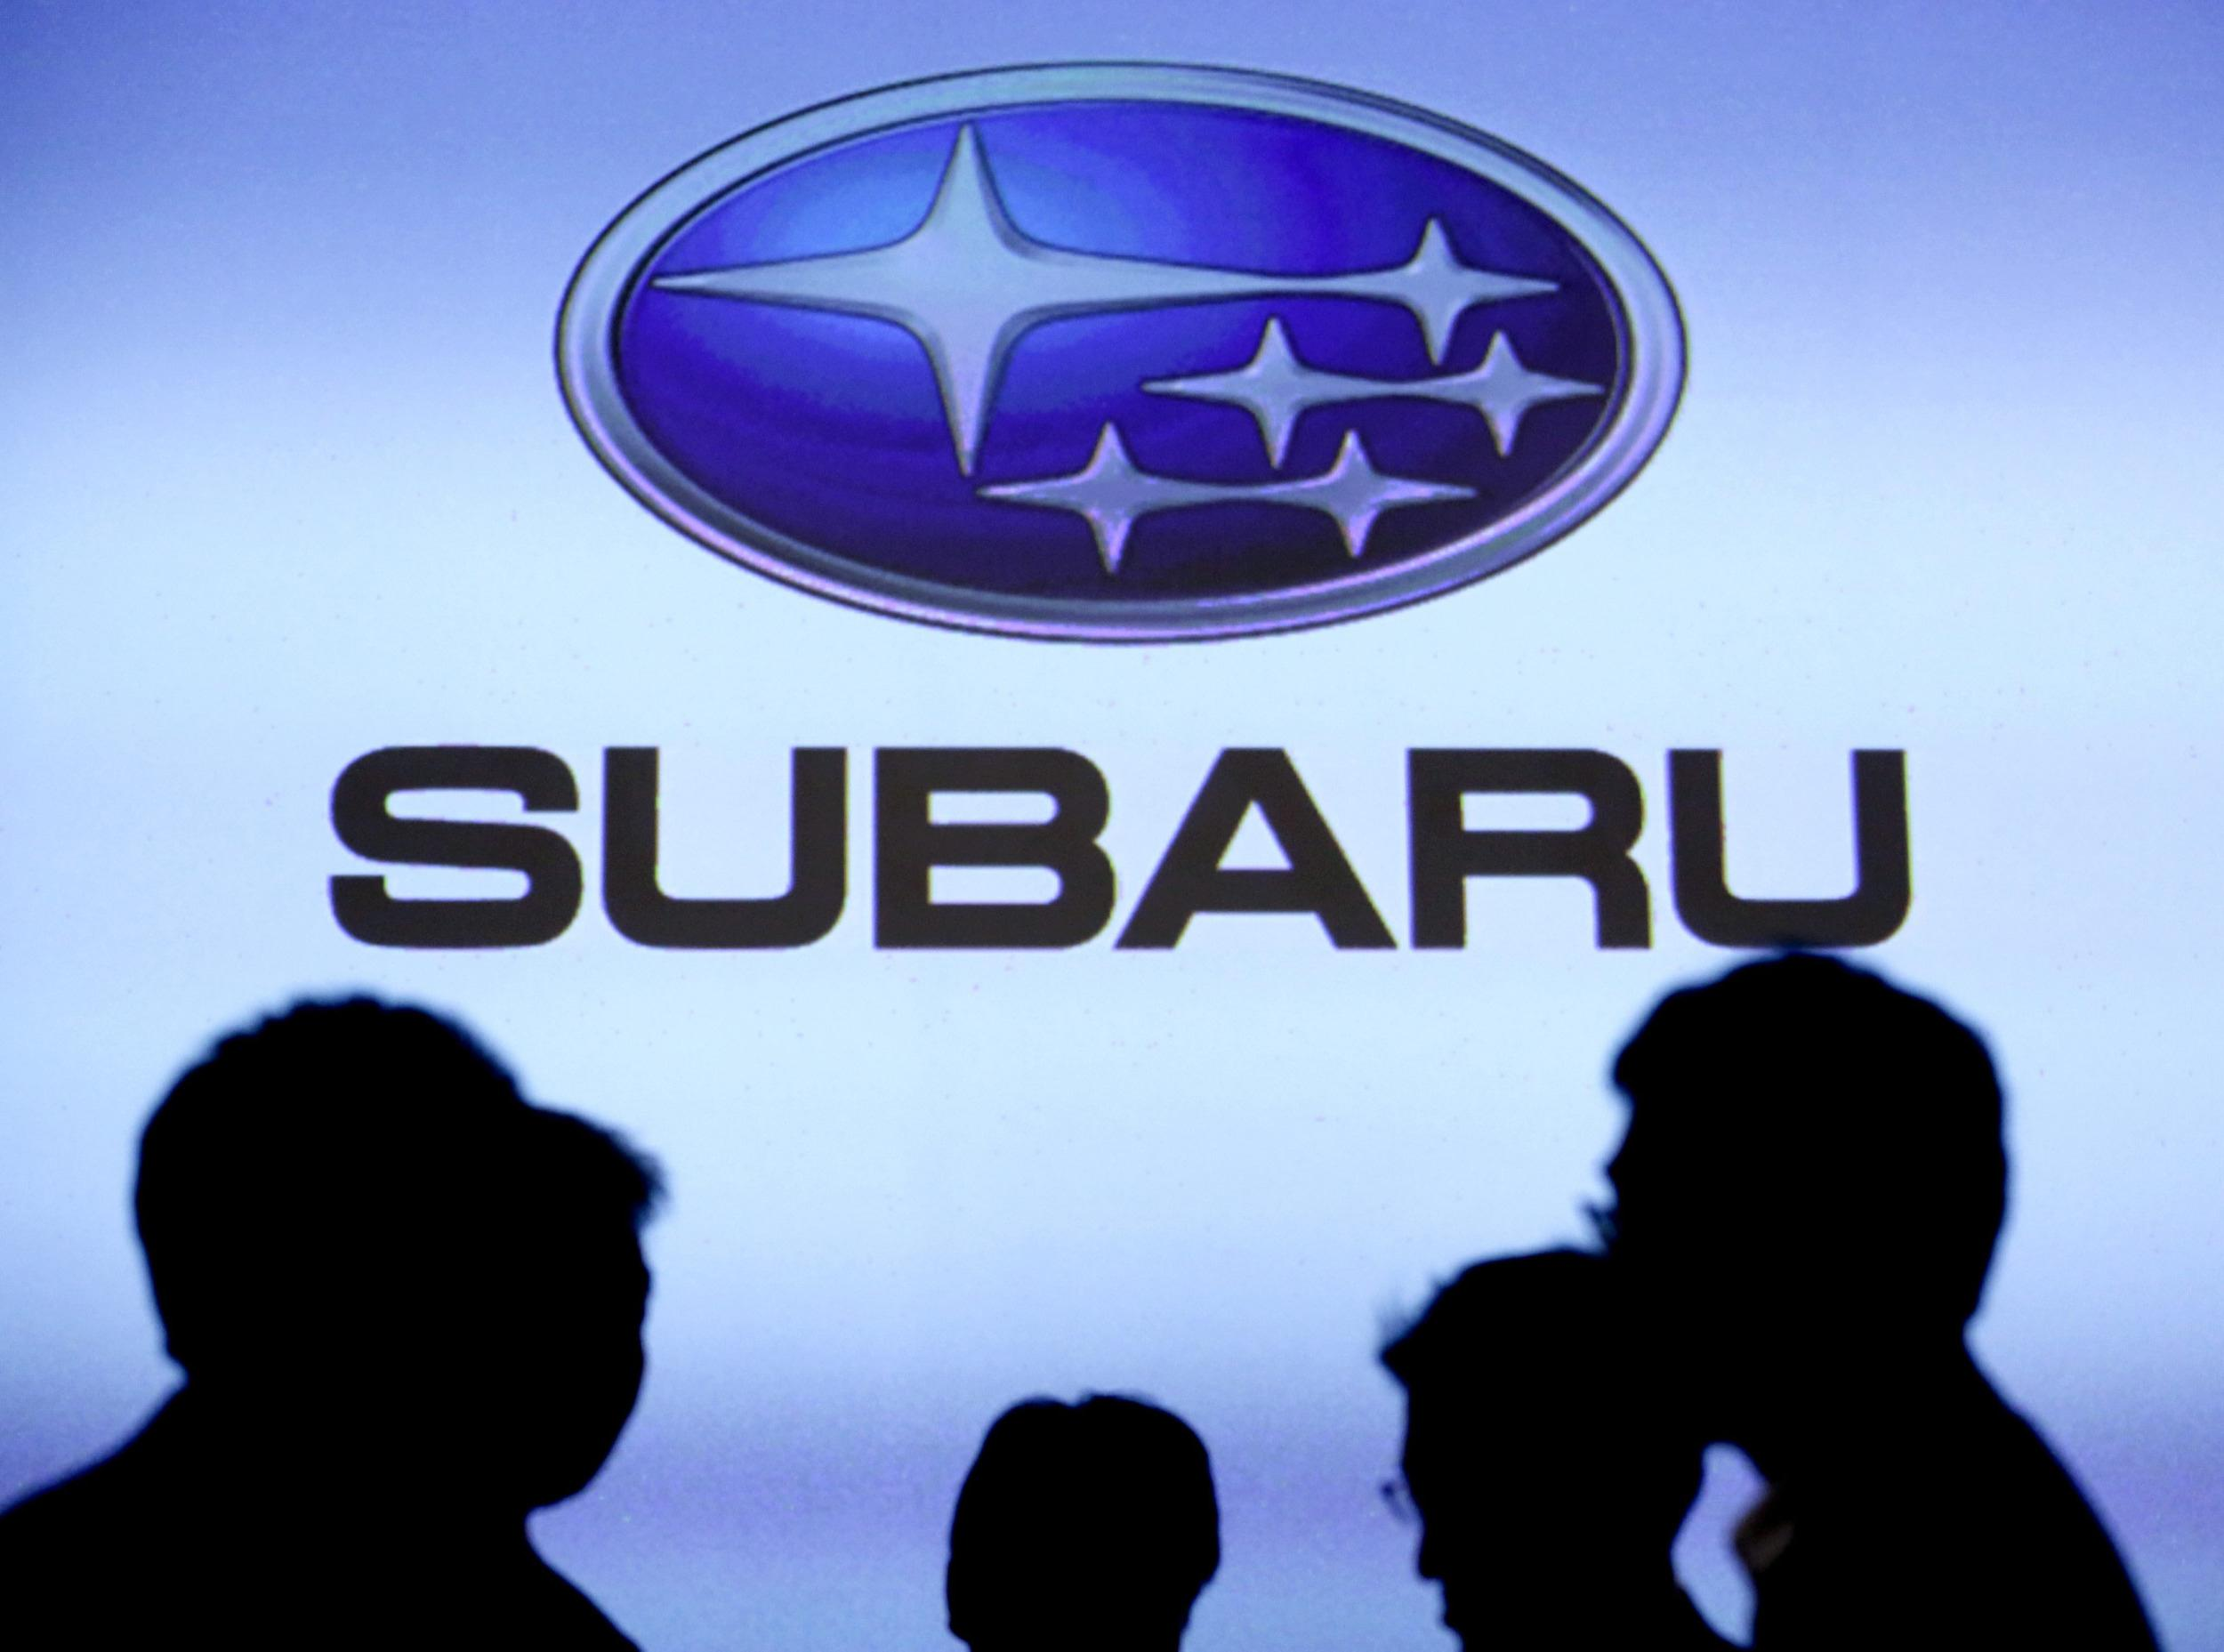 Subaru says it is recalling more than 660,000 cars and SUVs because the brake lines can rust and leak fluid.